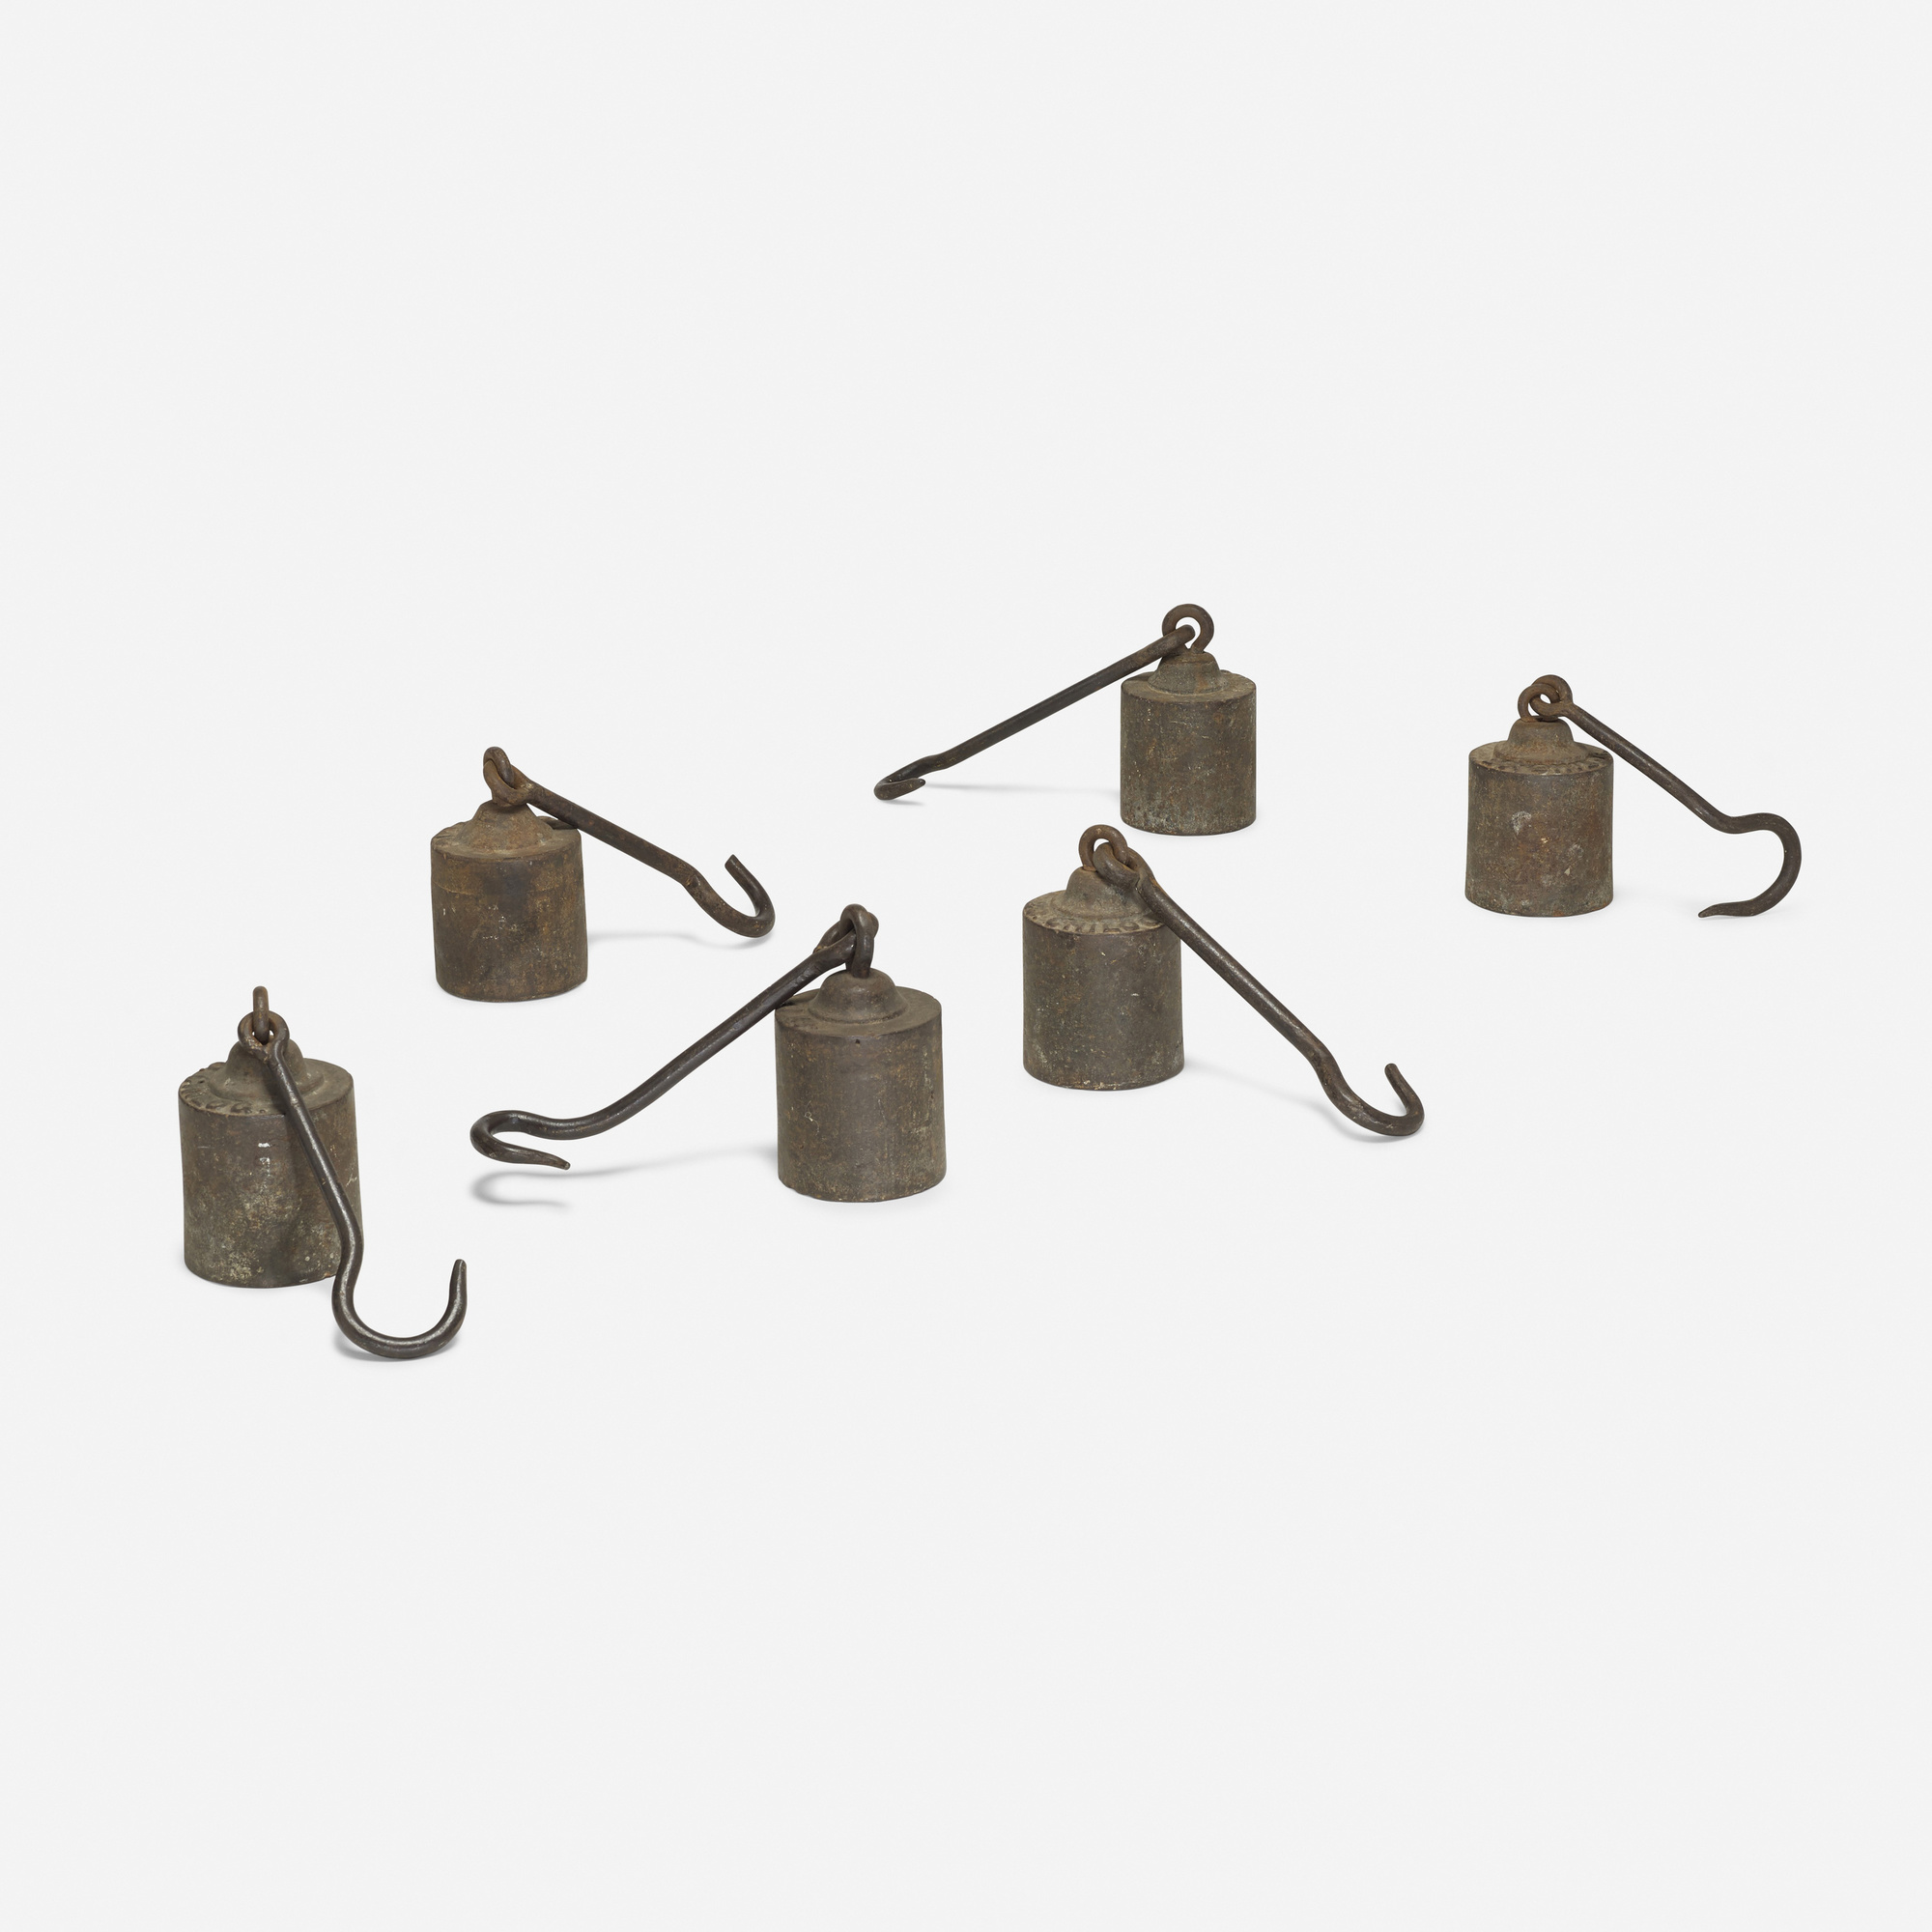 115: Industrial / scale weights, set of six (1 of 1)